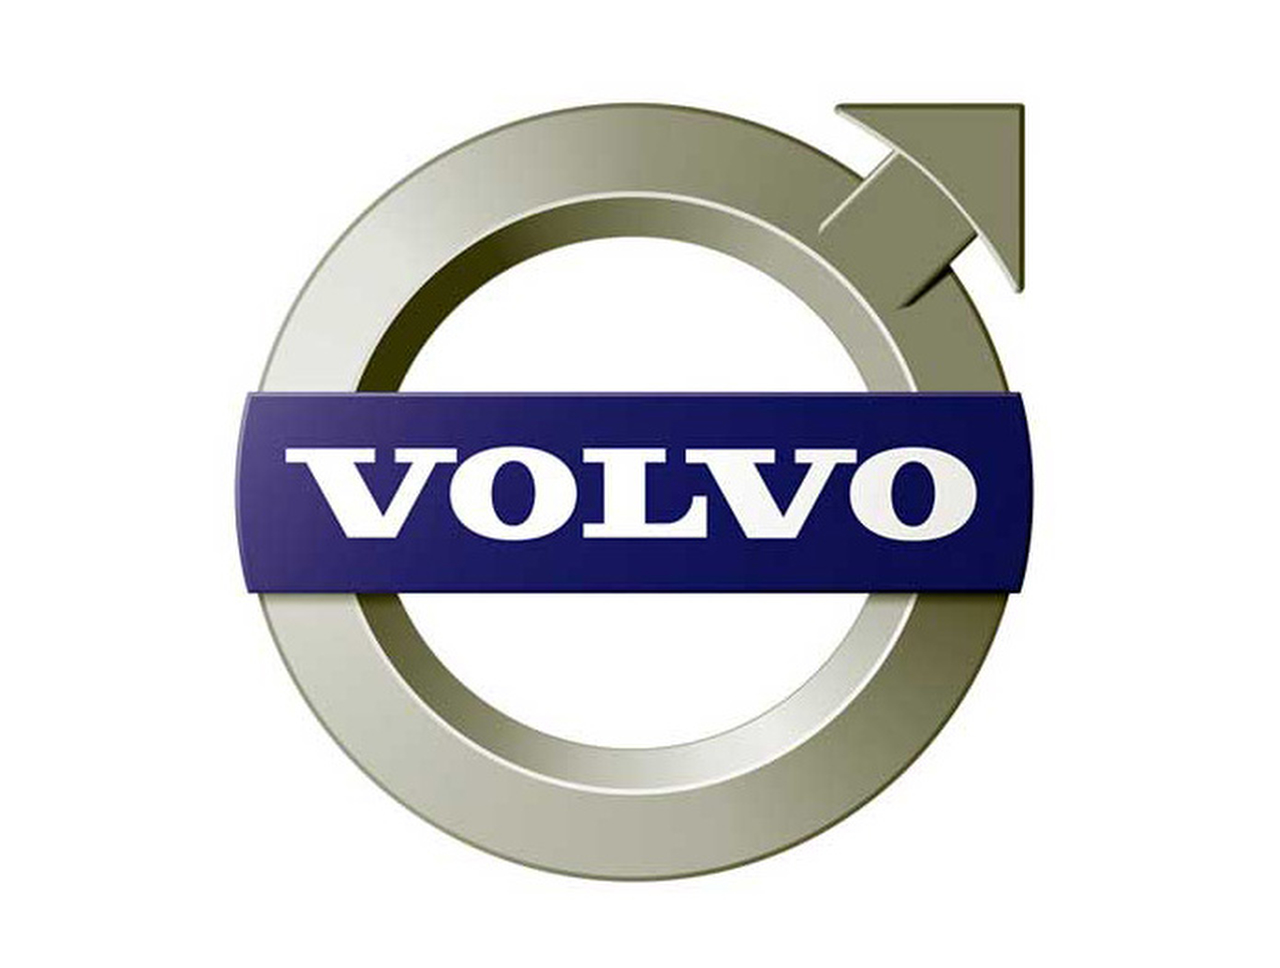 New details about Volvo's Drive-E engines